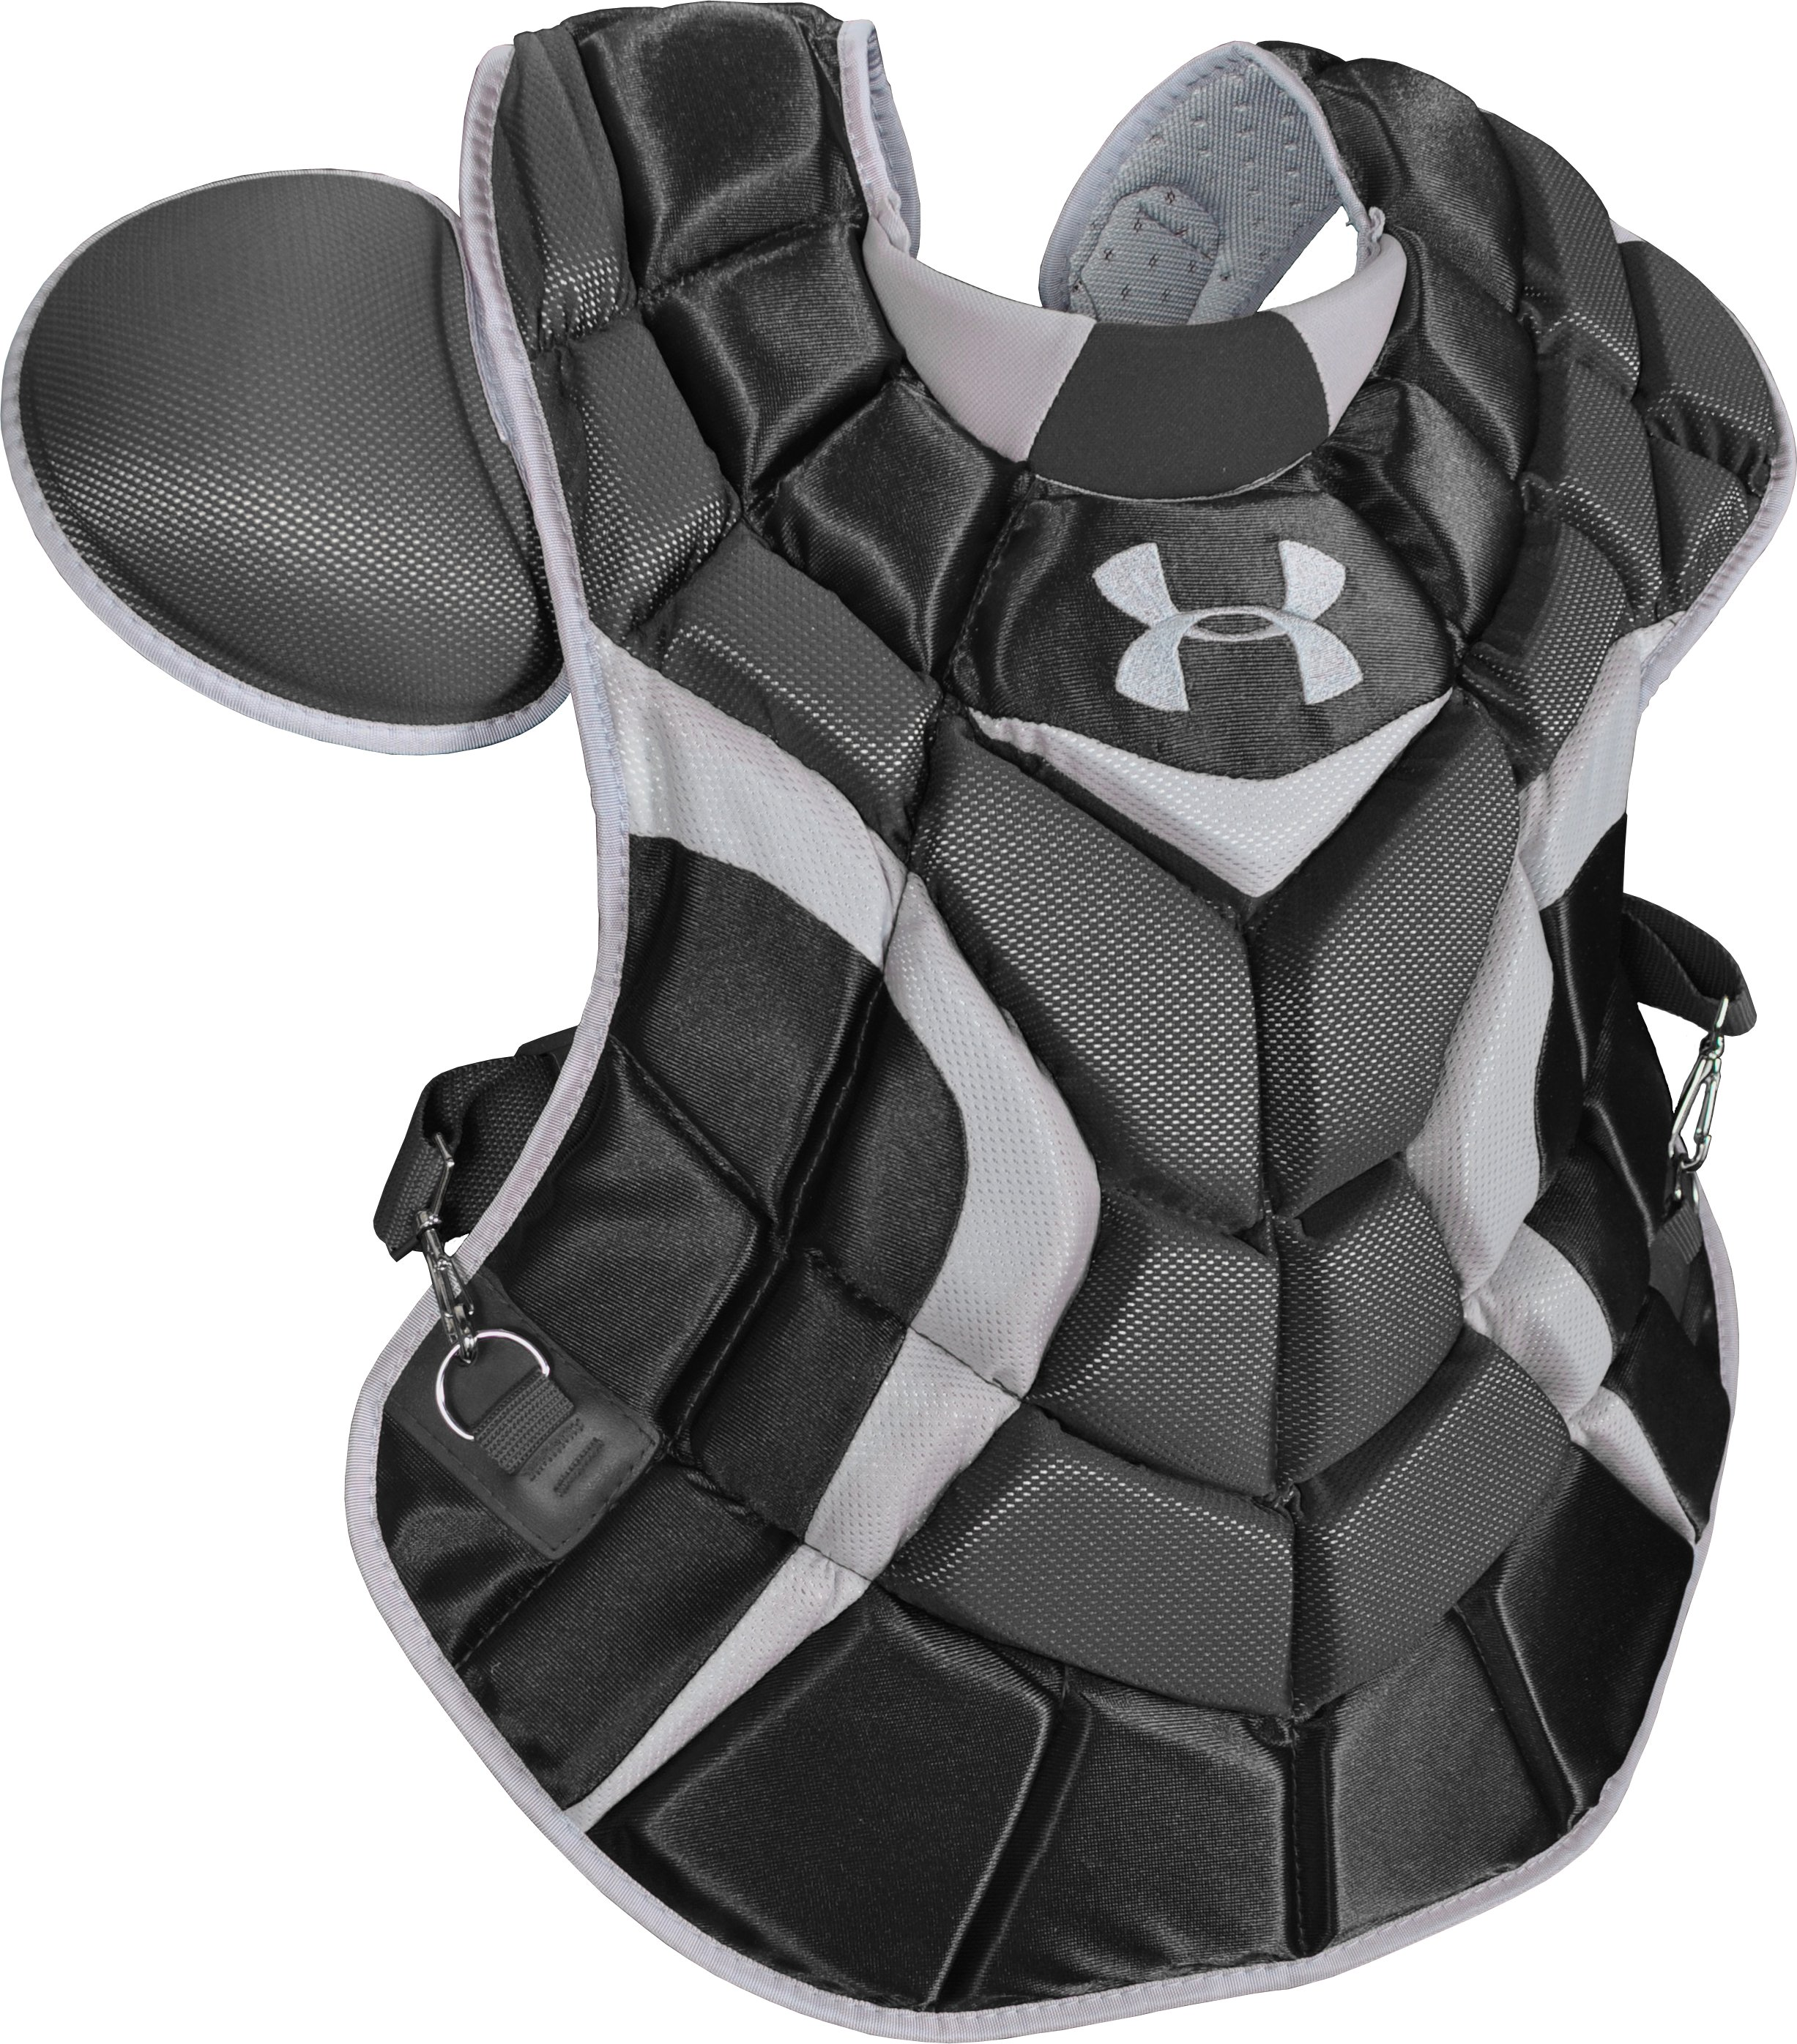 Men's Pro Catcher's Chest Protector, Black , zoomed image